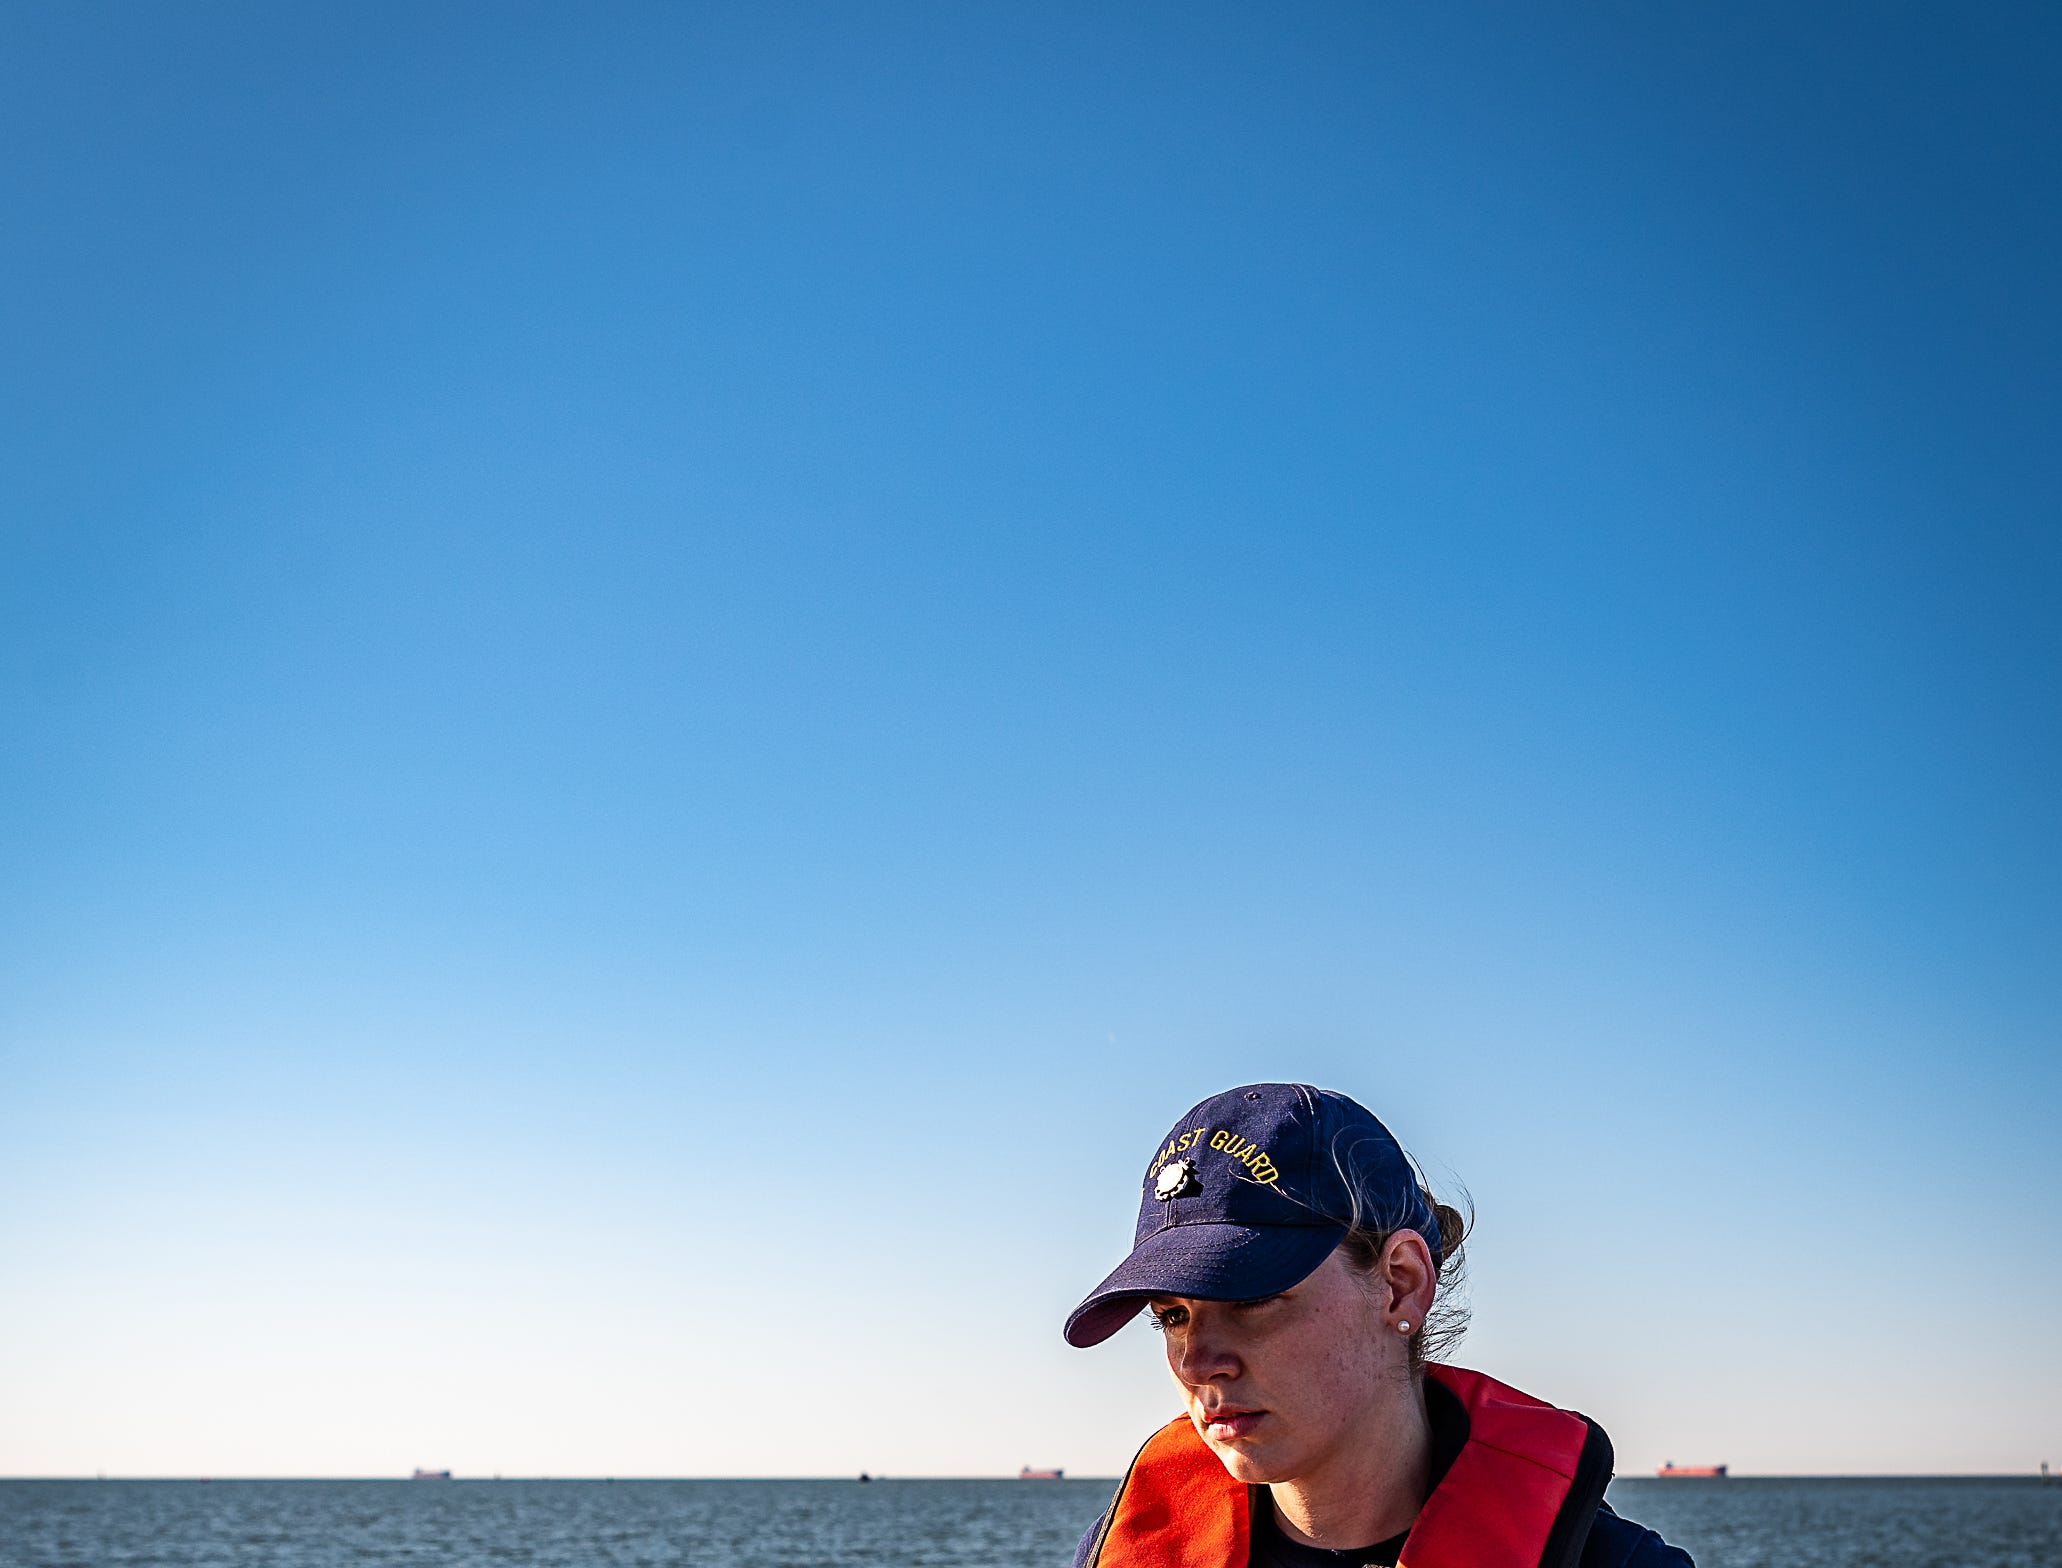 Seaman Jordan Lissy pauses during a cold-water survival demonstration on Tuesday, Oct. 30, 2018 U.S. Coast Guard in Cape Charles, Virginia.